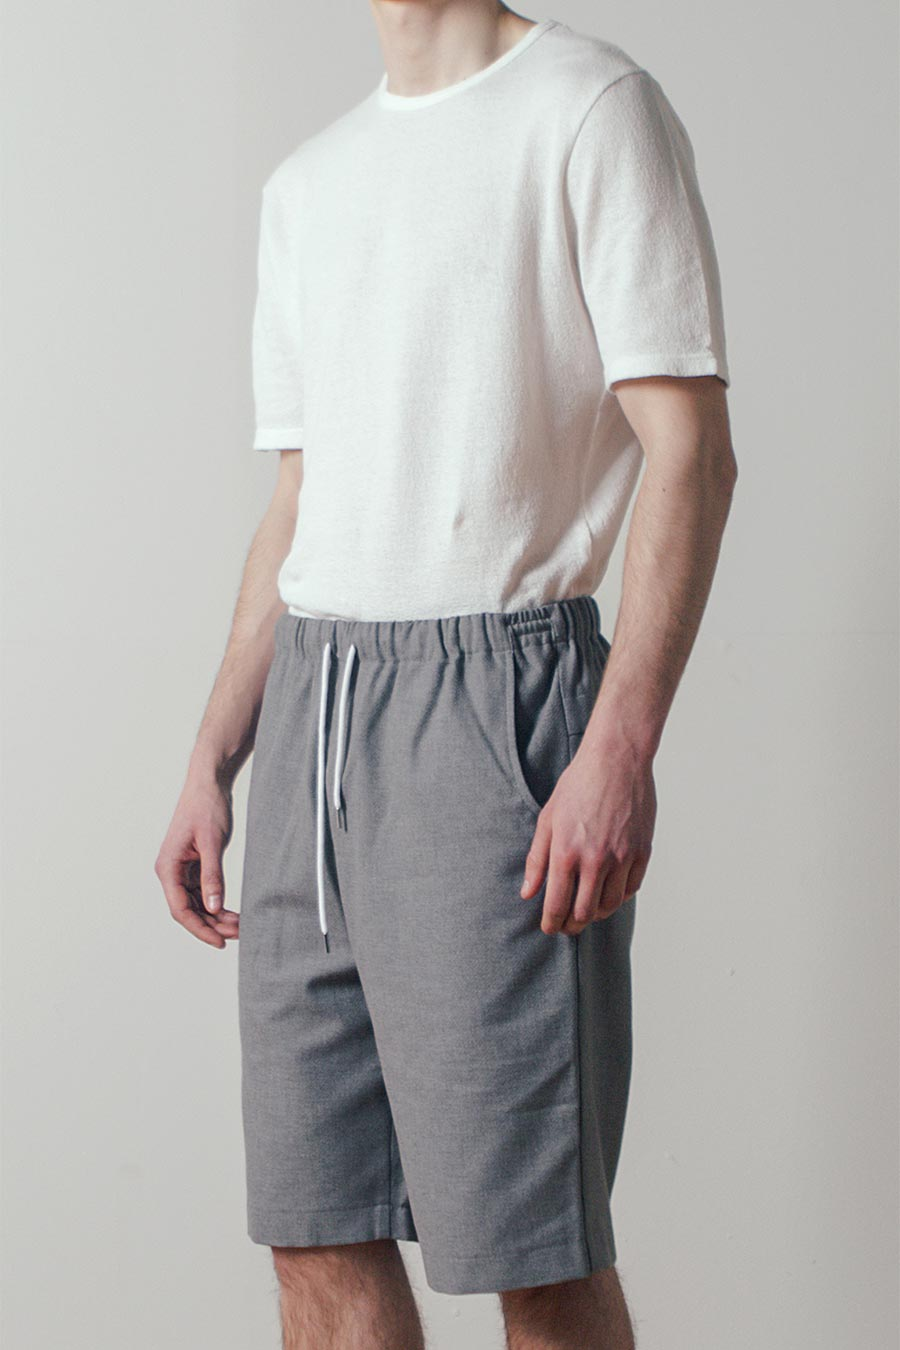 Balance Short in Gray by Coltesse